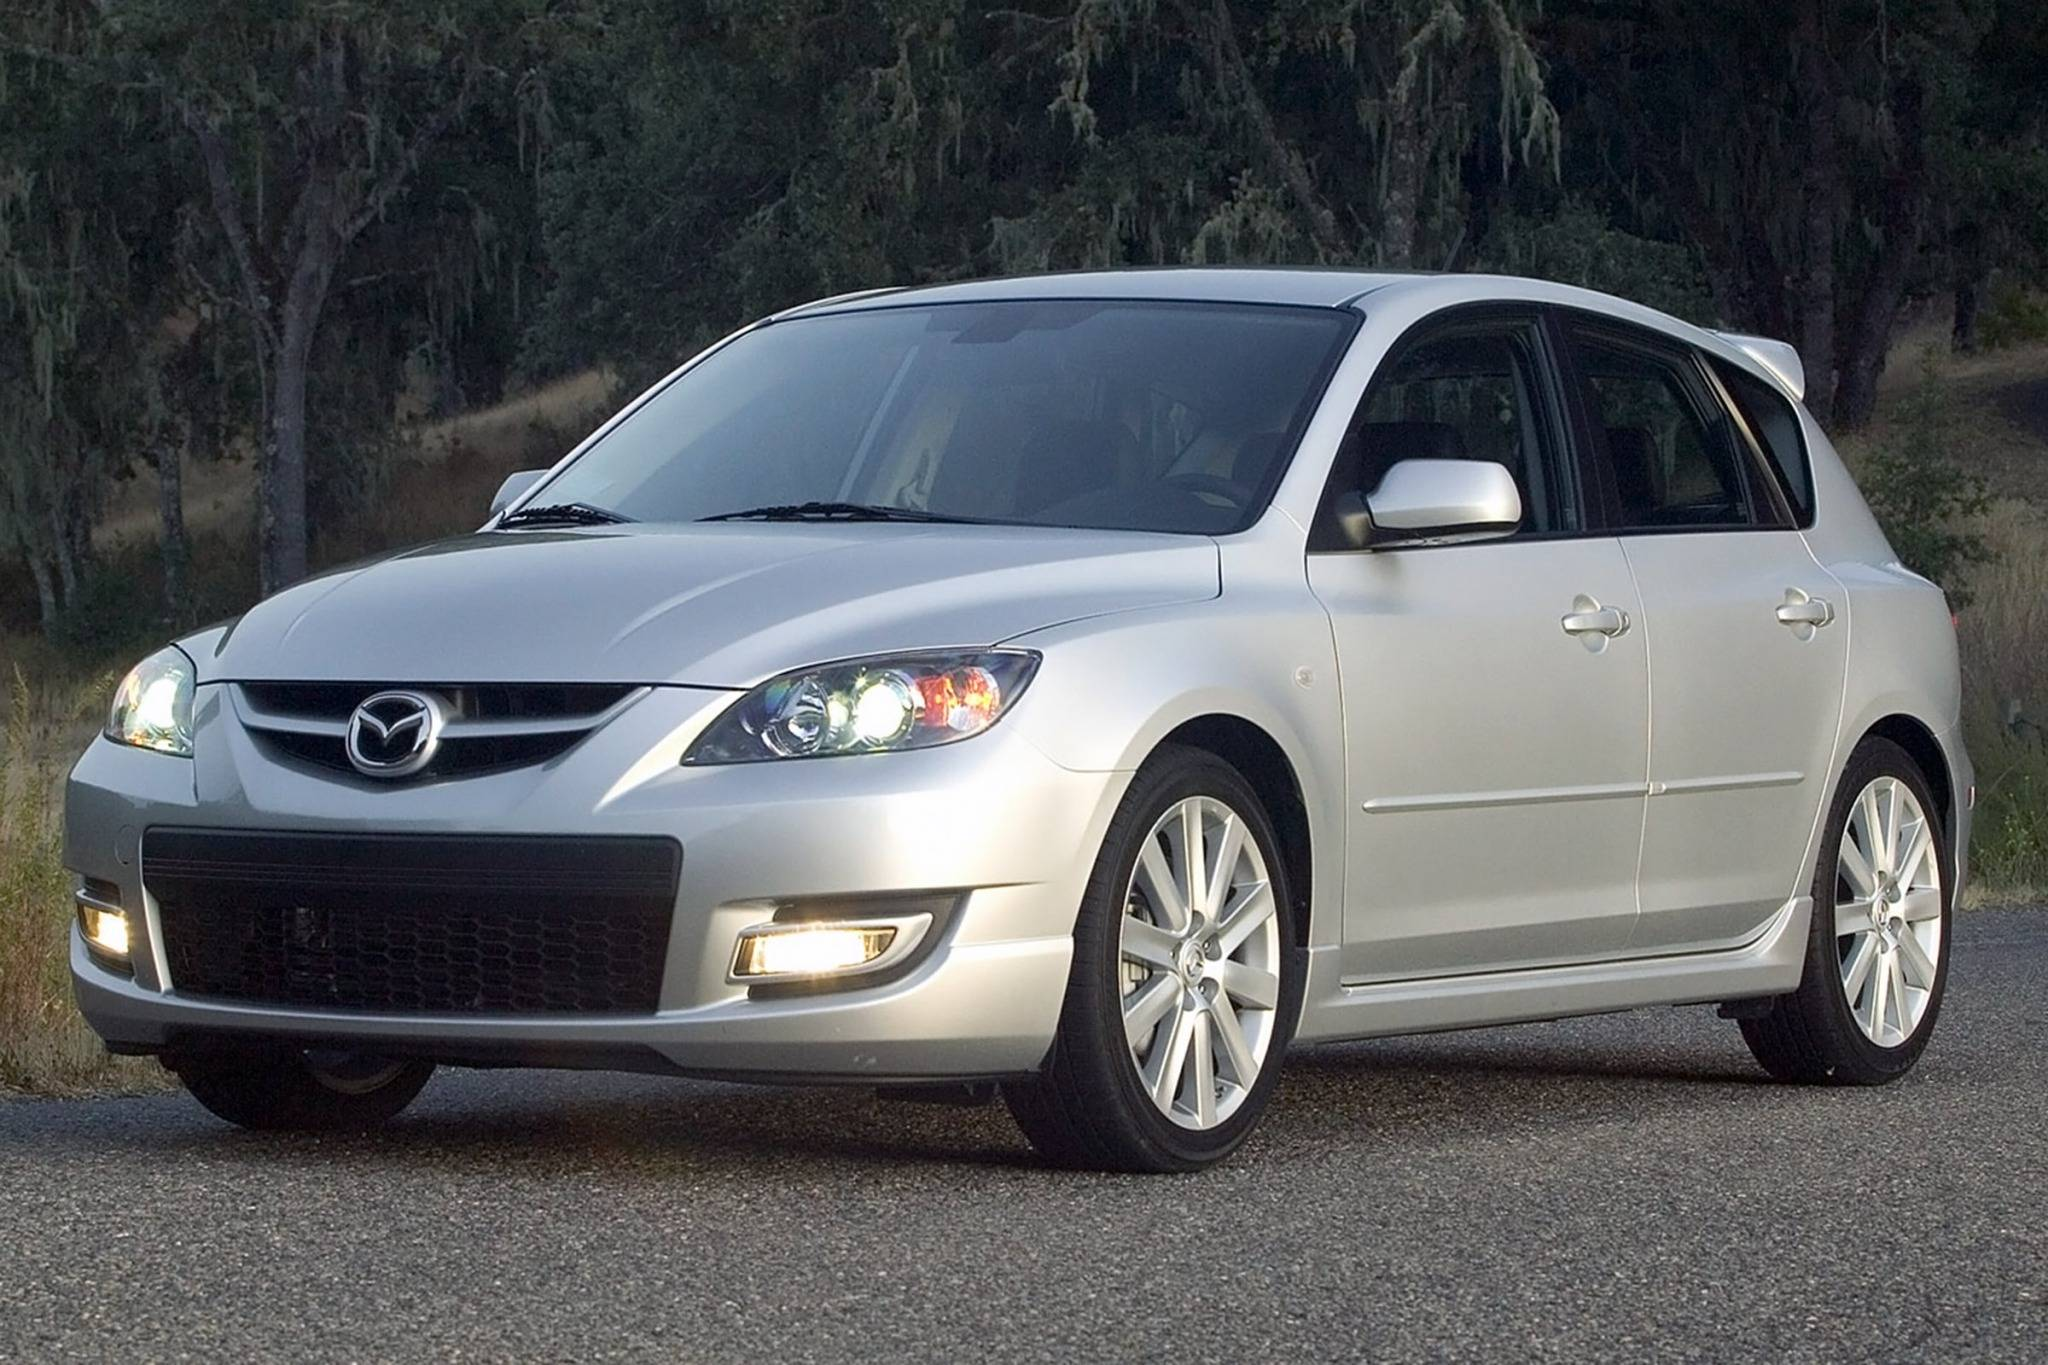 maintenance schedule for mazda mazdaspeed 3 openbay. Black Bedroom Furniture Sets. Home Design Ideas